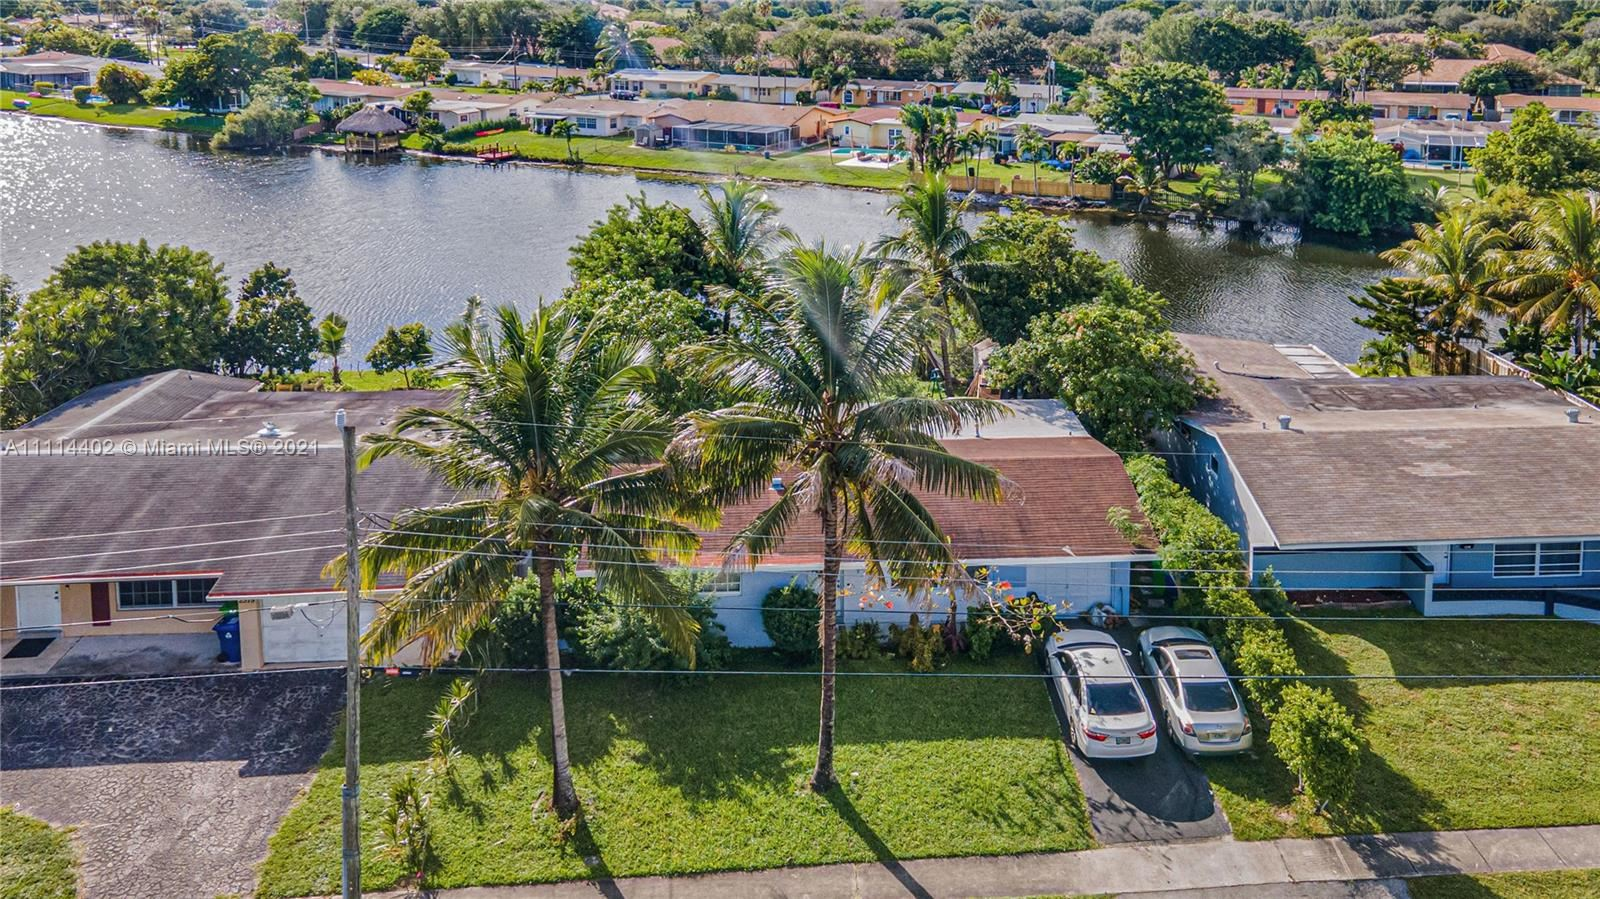 Photo of 2391 NW 72nd Ave, Sunrise, FL 33313 (MLS # A11114402)